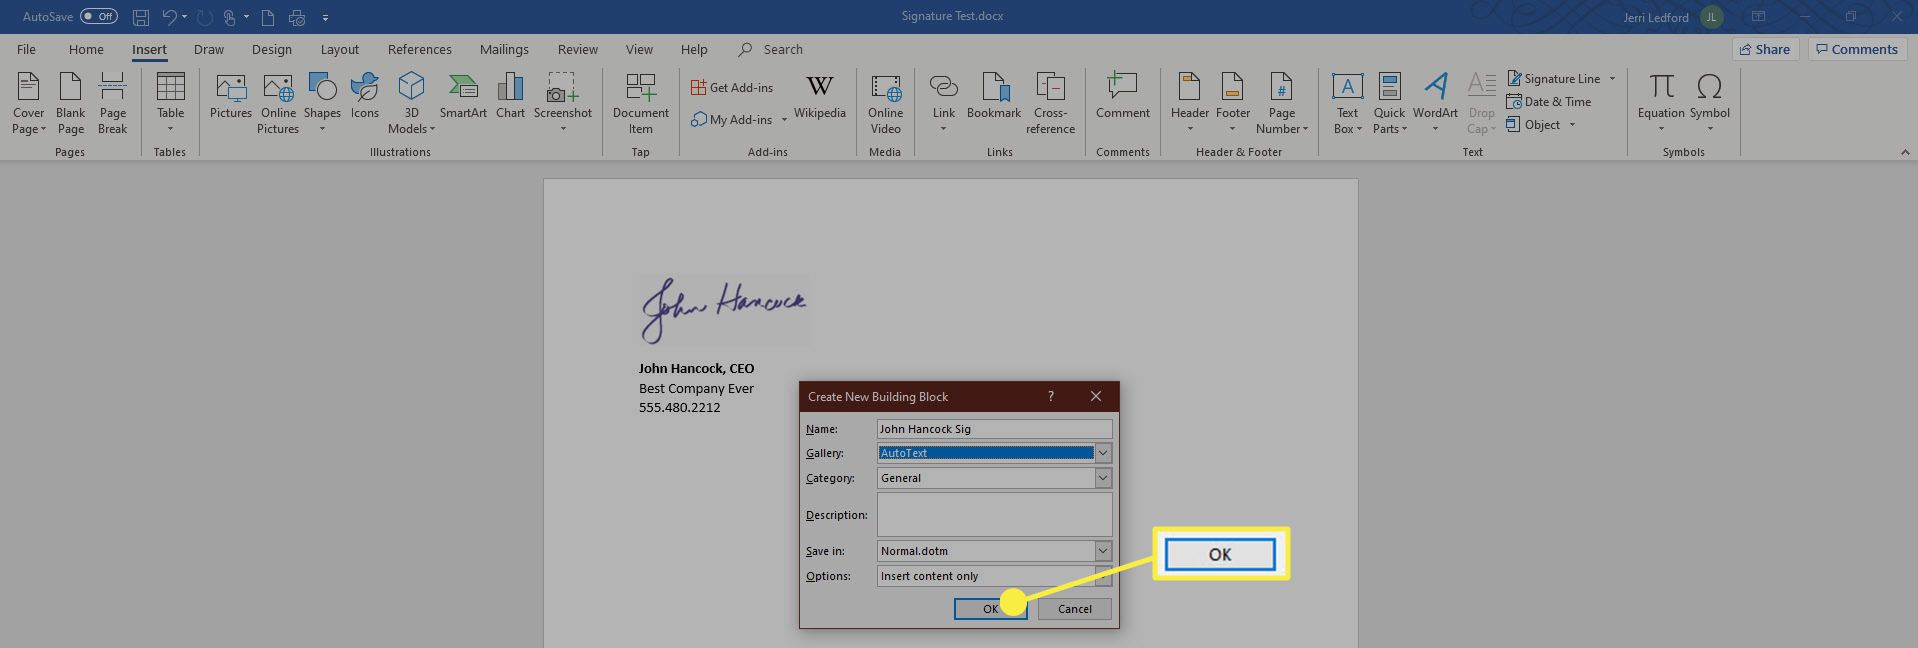 Creating Autotext Signature in Word.